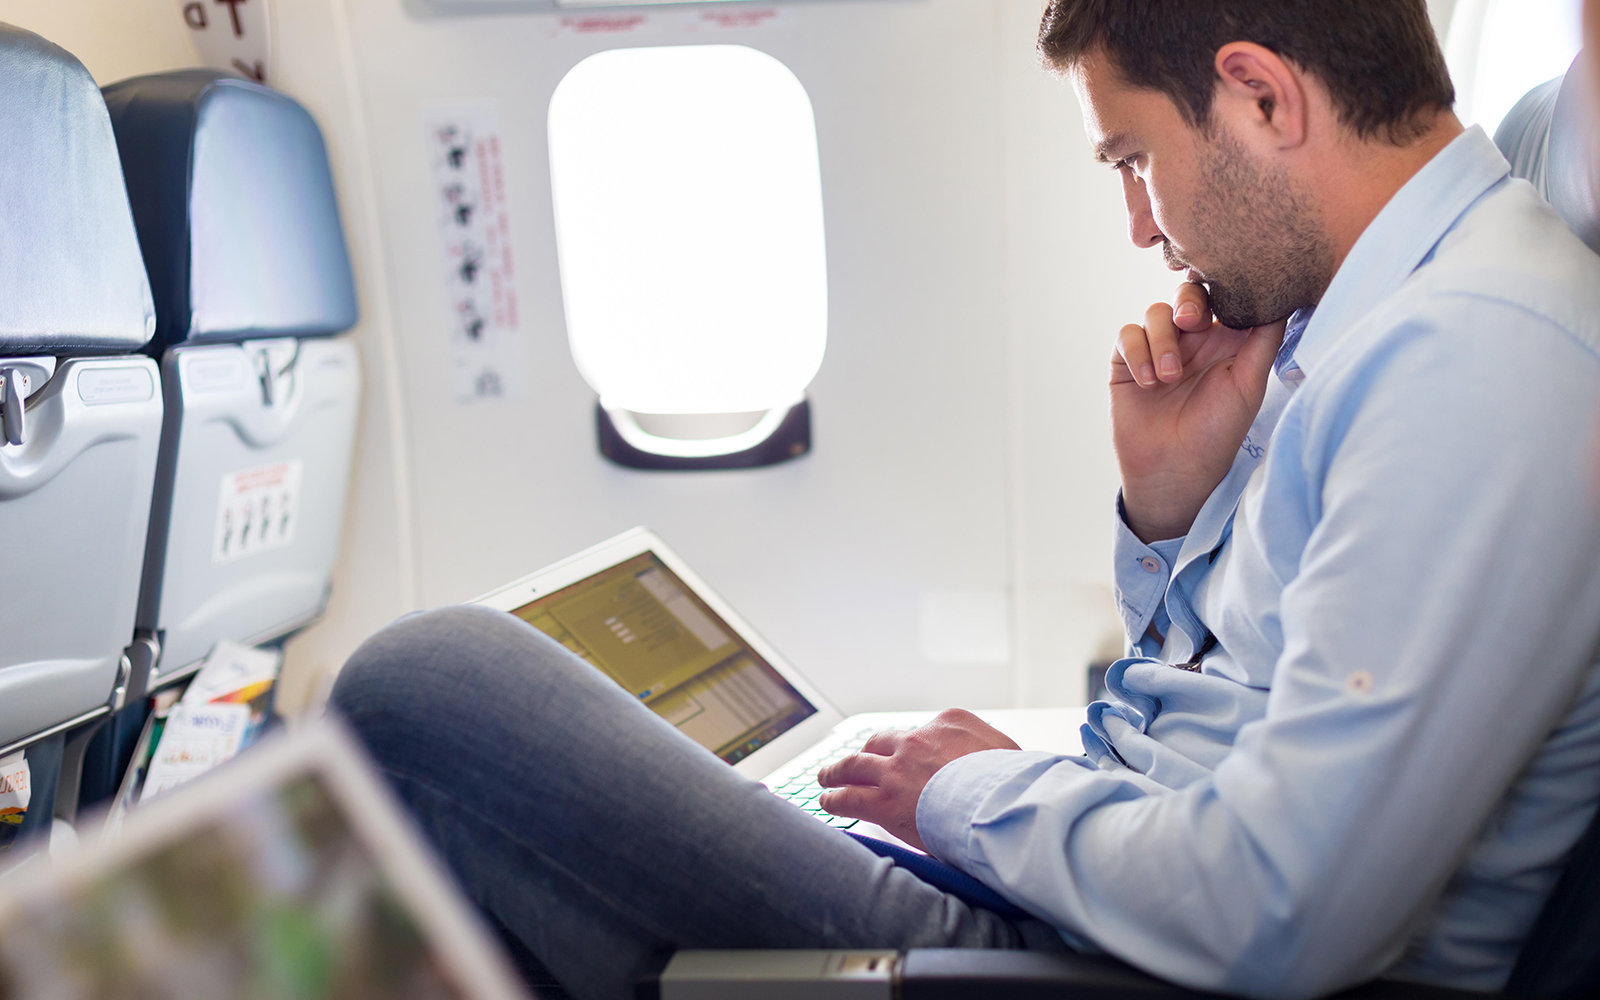 Man on laptop in airplane